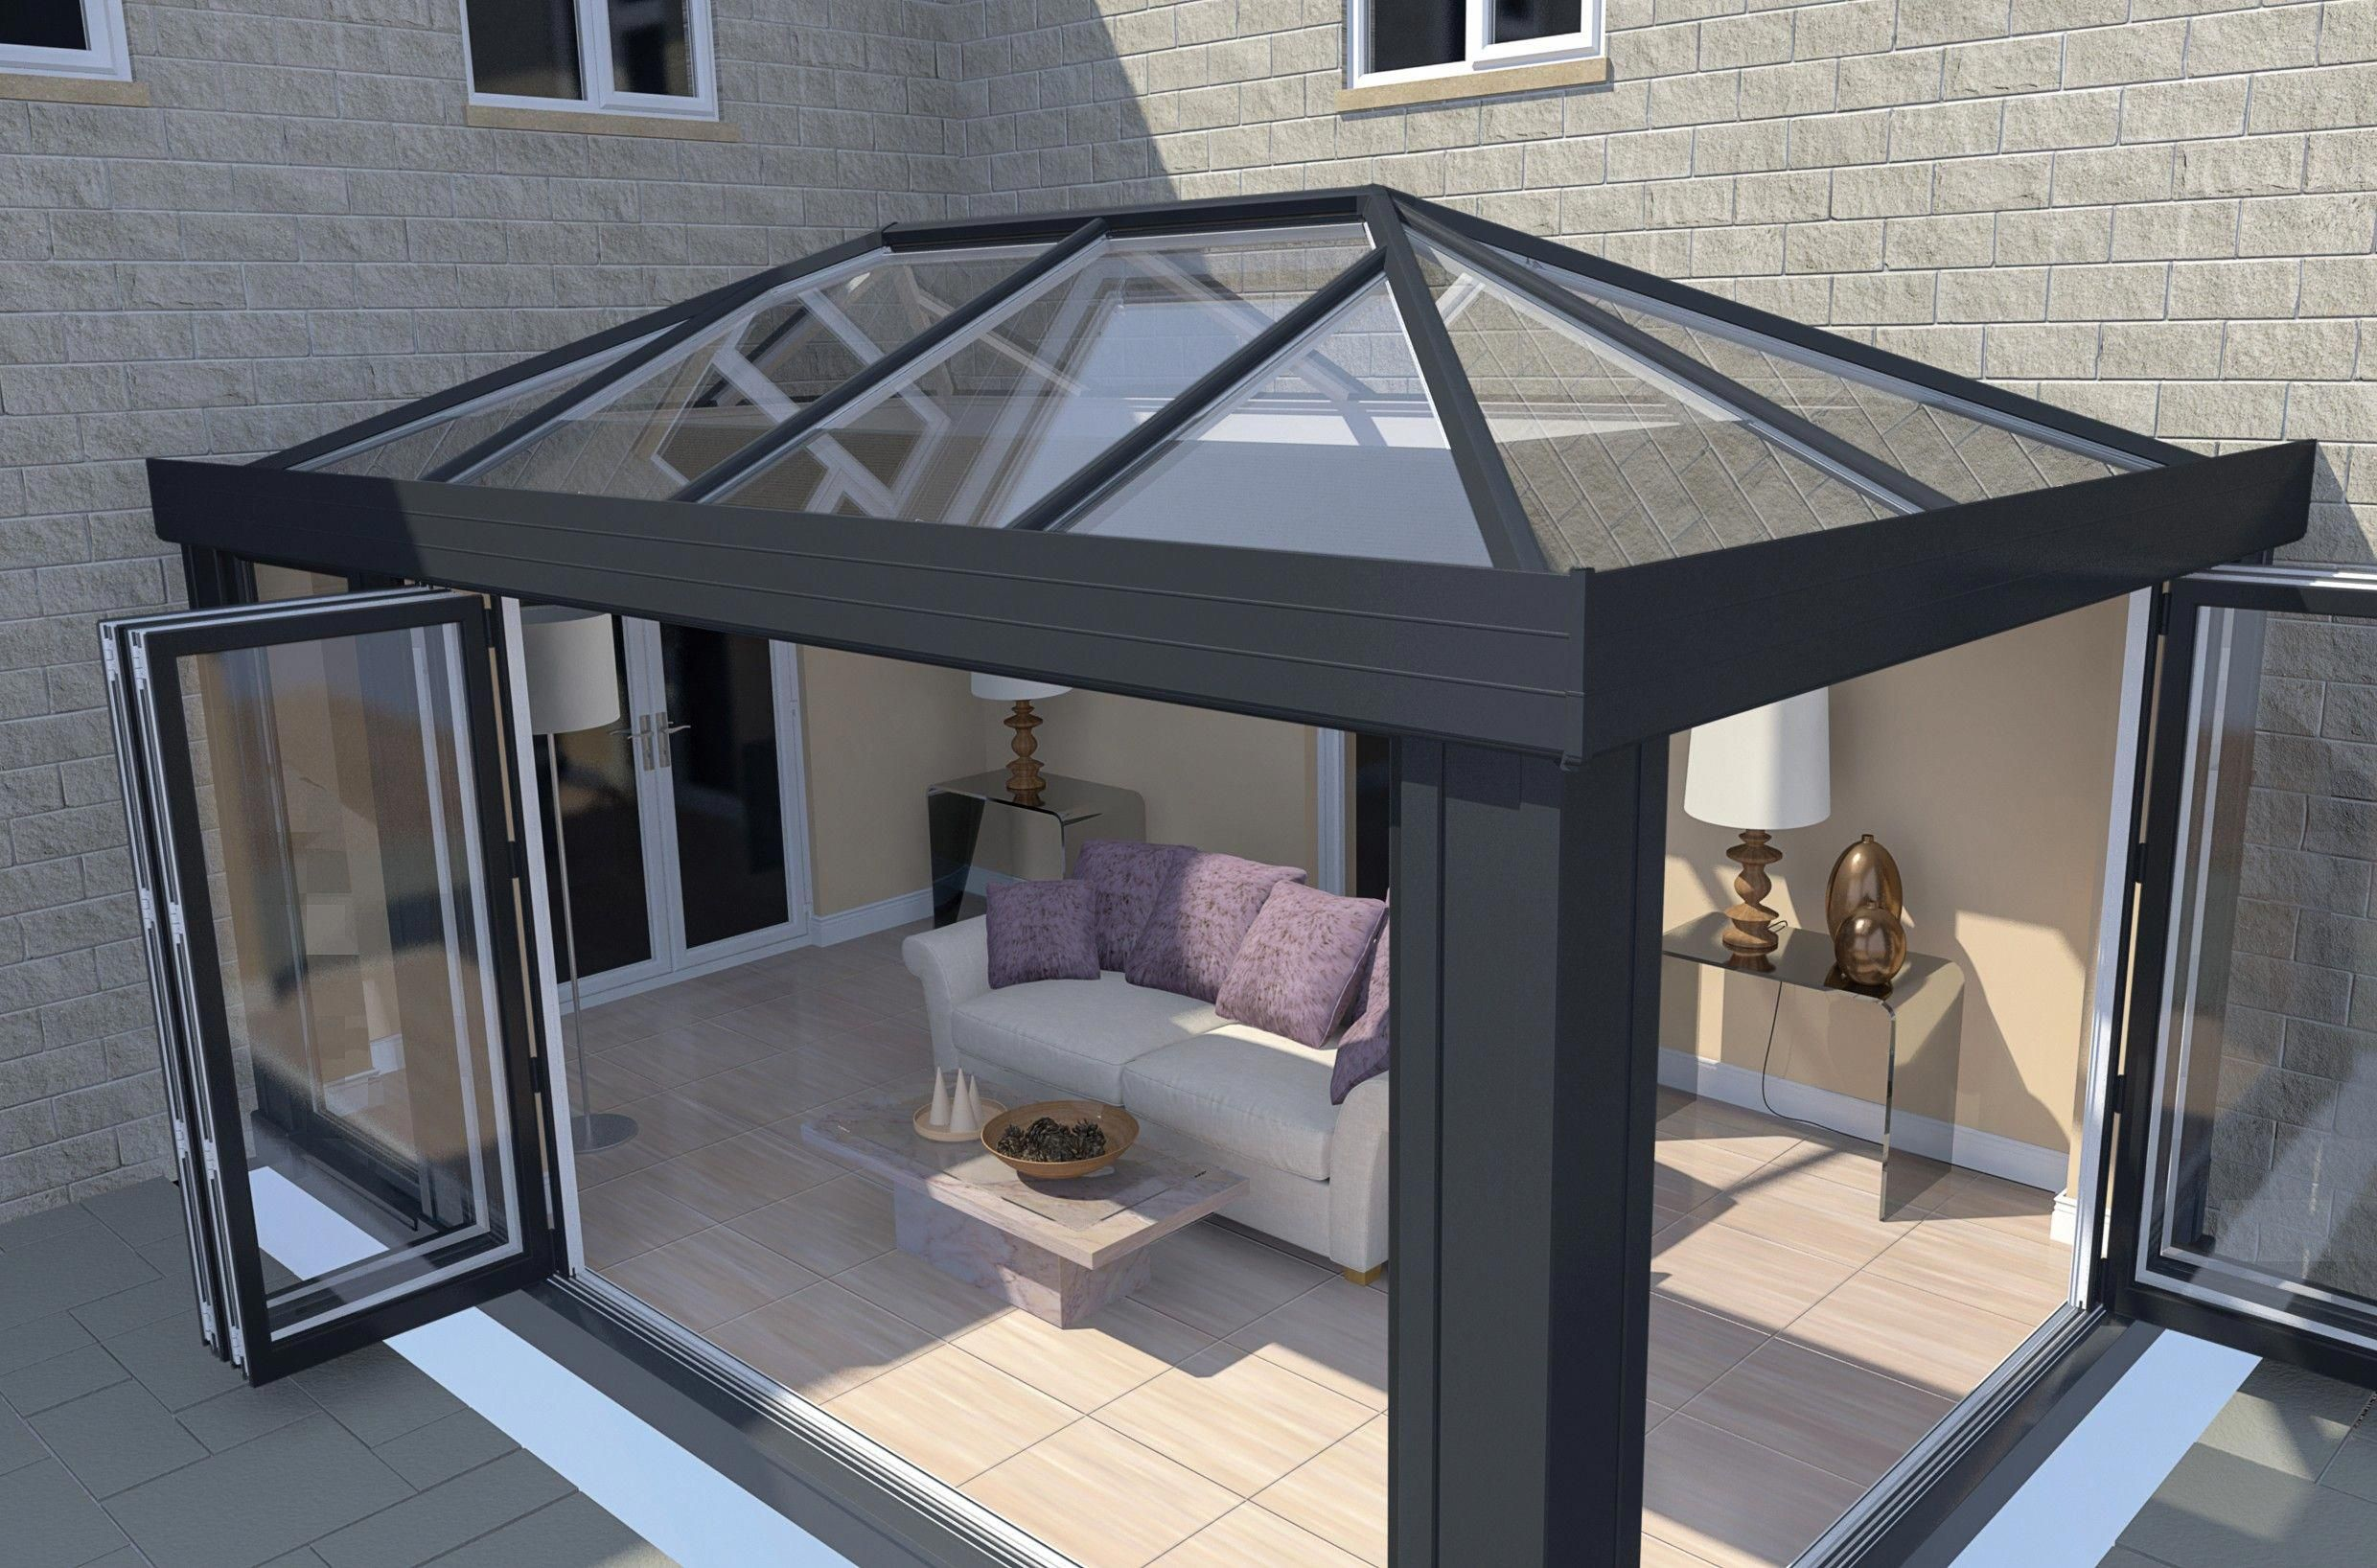 Green Roofs And Great Savings House Extension Design Garden Room Extensions Conservatory Design